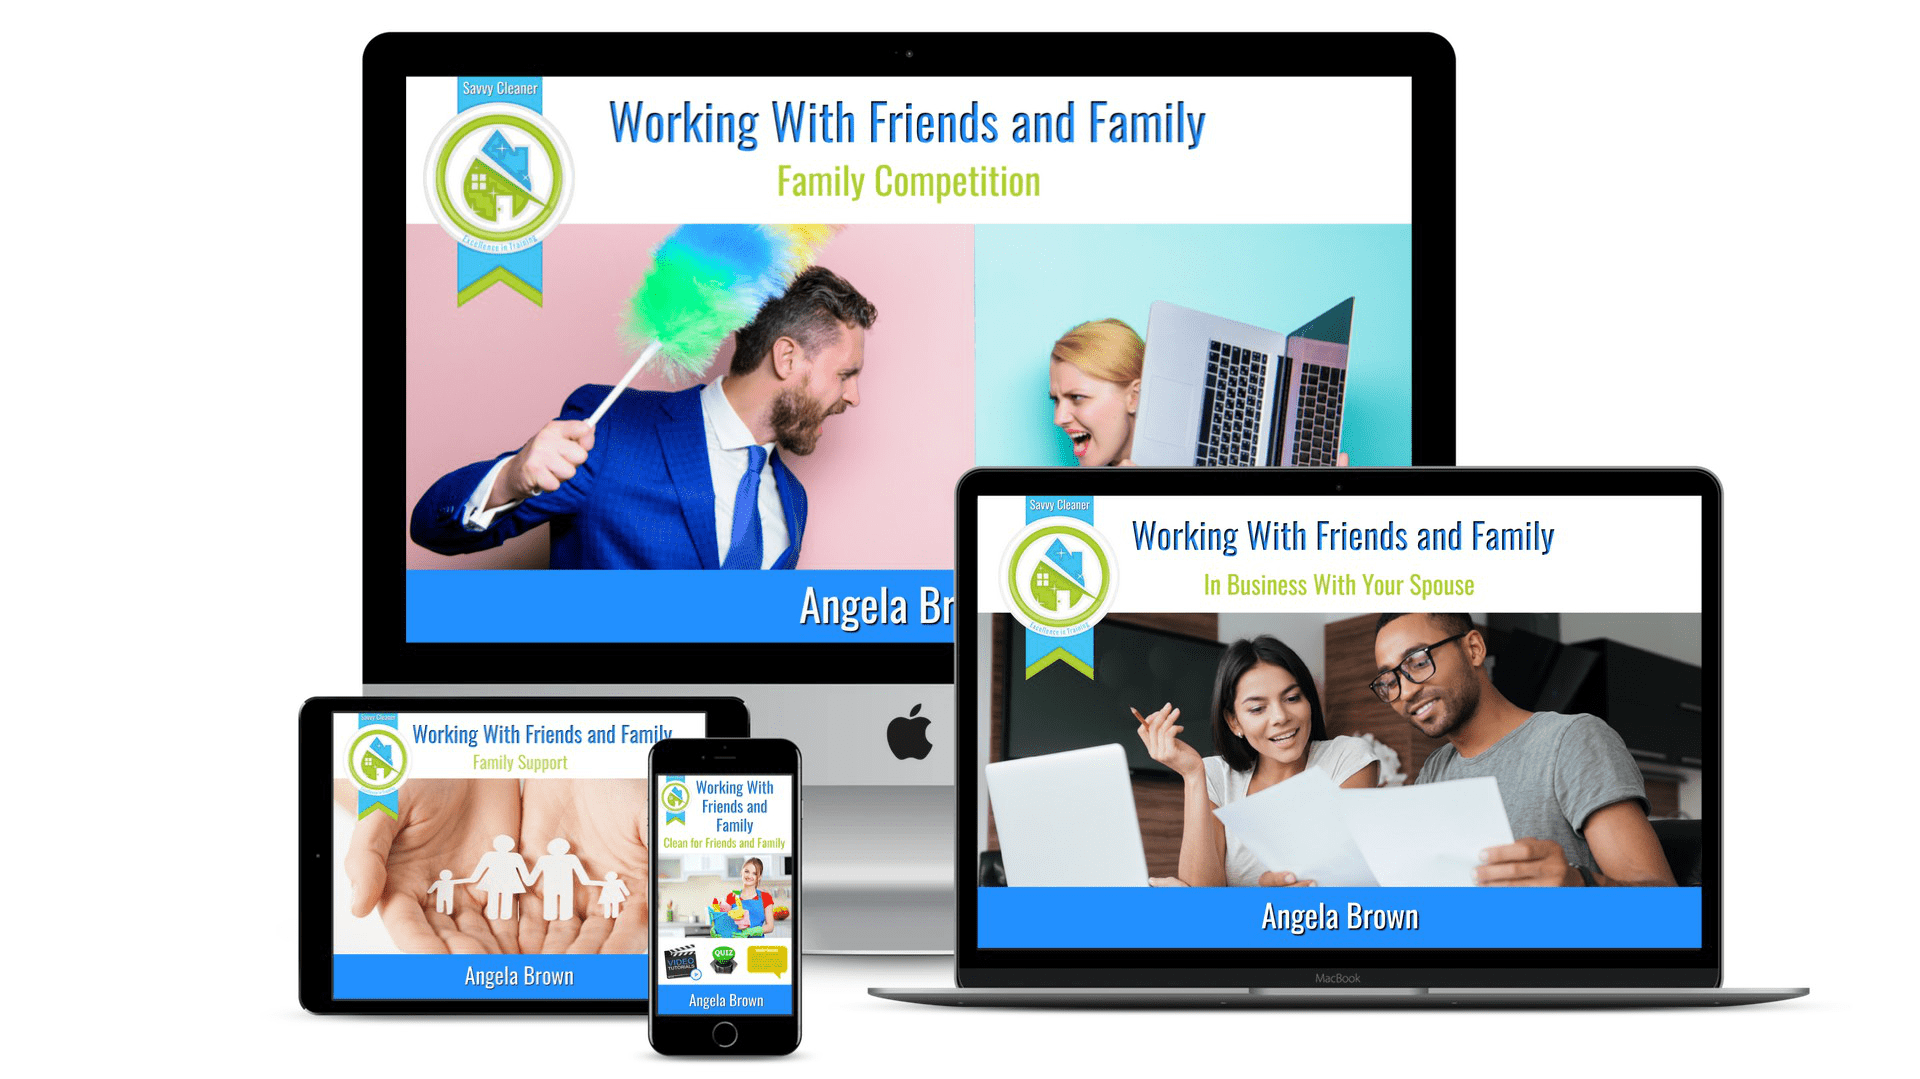 Cover Image - Working With Friends and Family